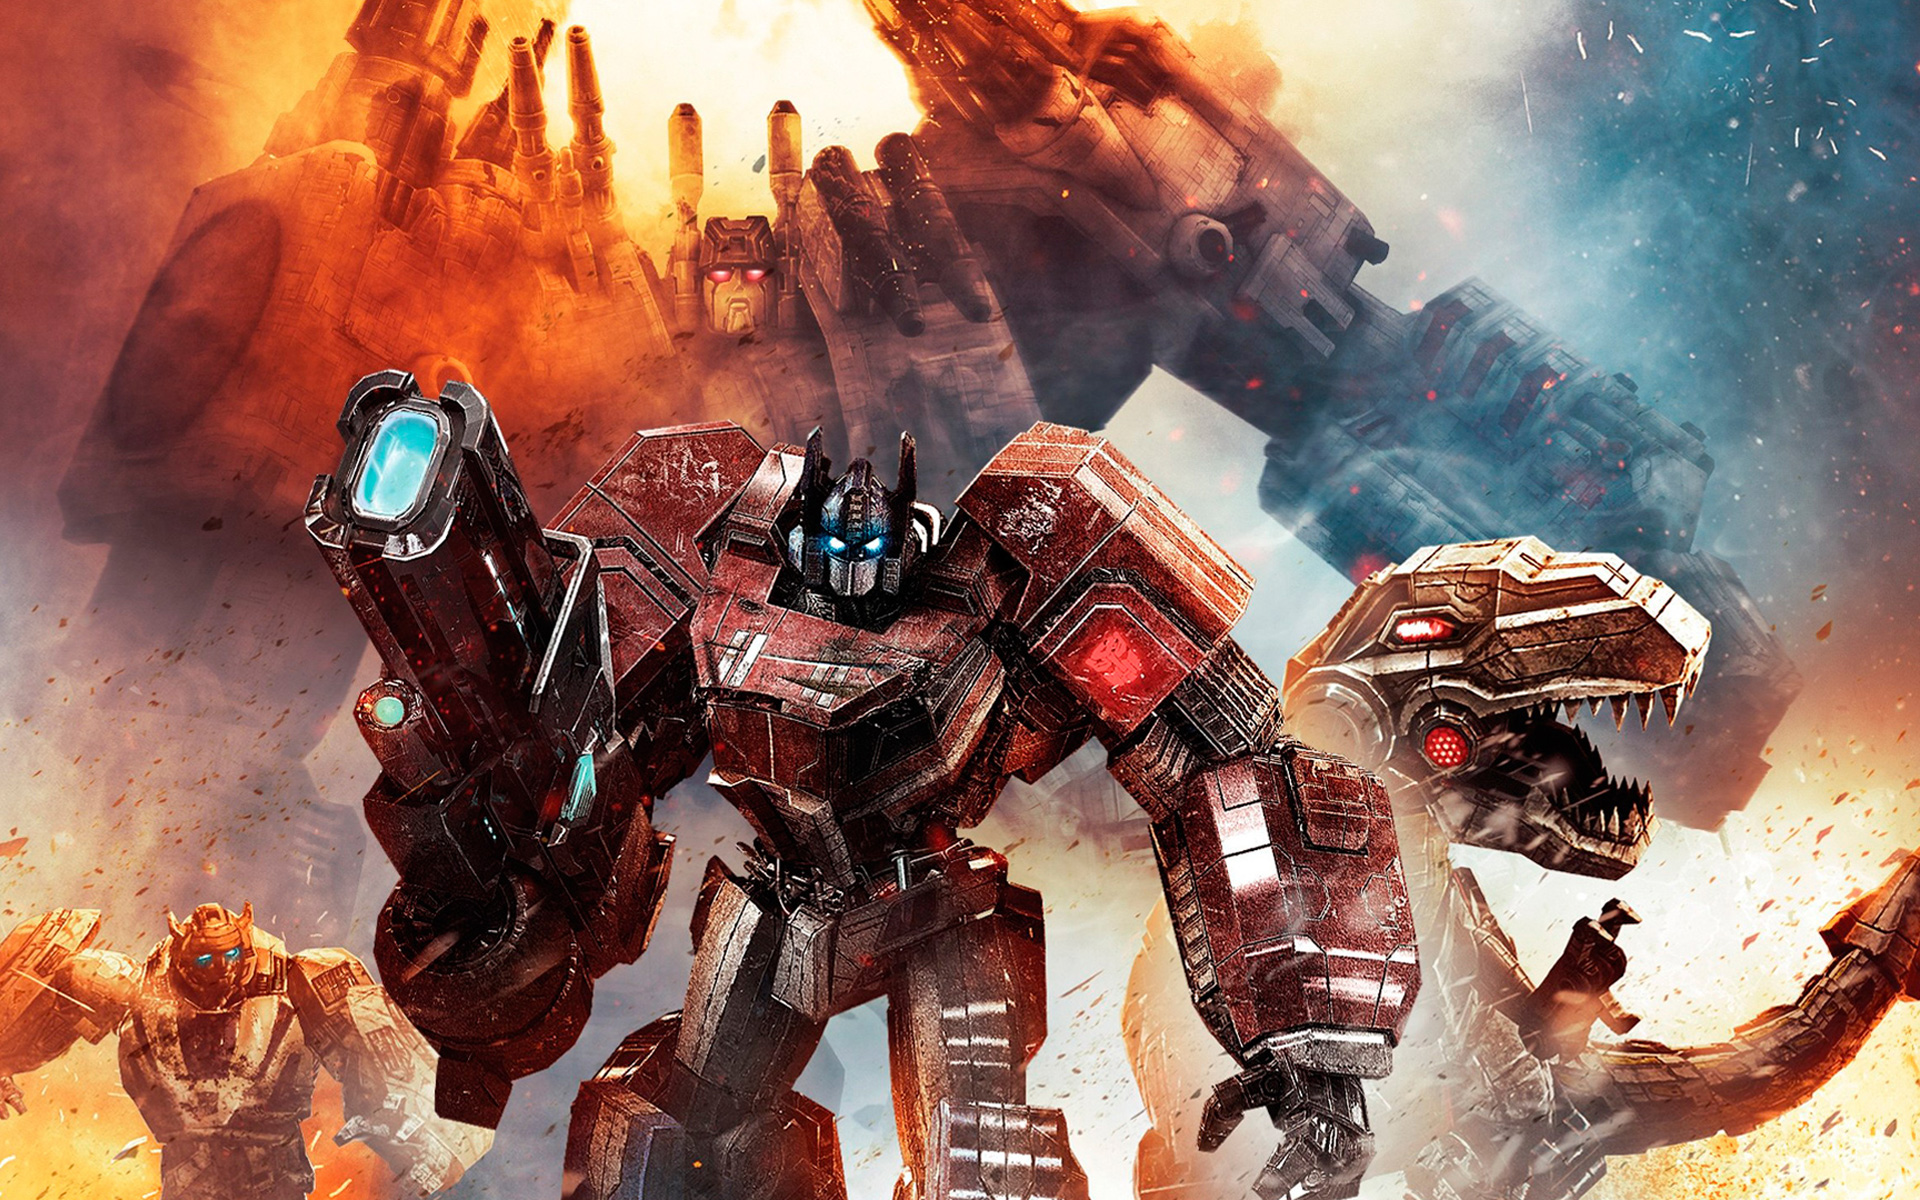 Transformers Fall of Cybertron Wallpaper in 1920x1200 1920x1200